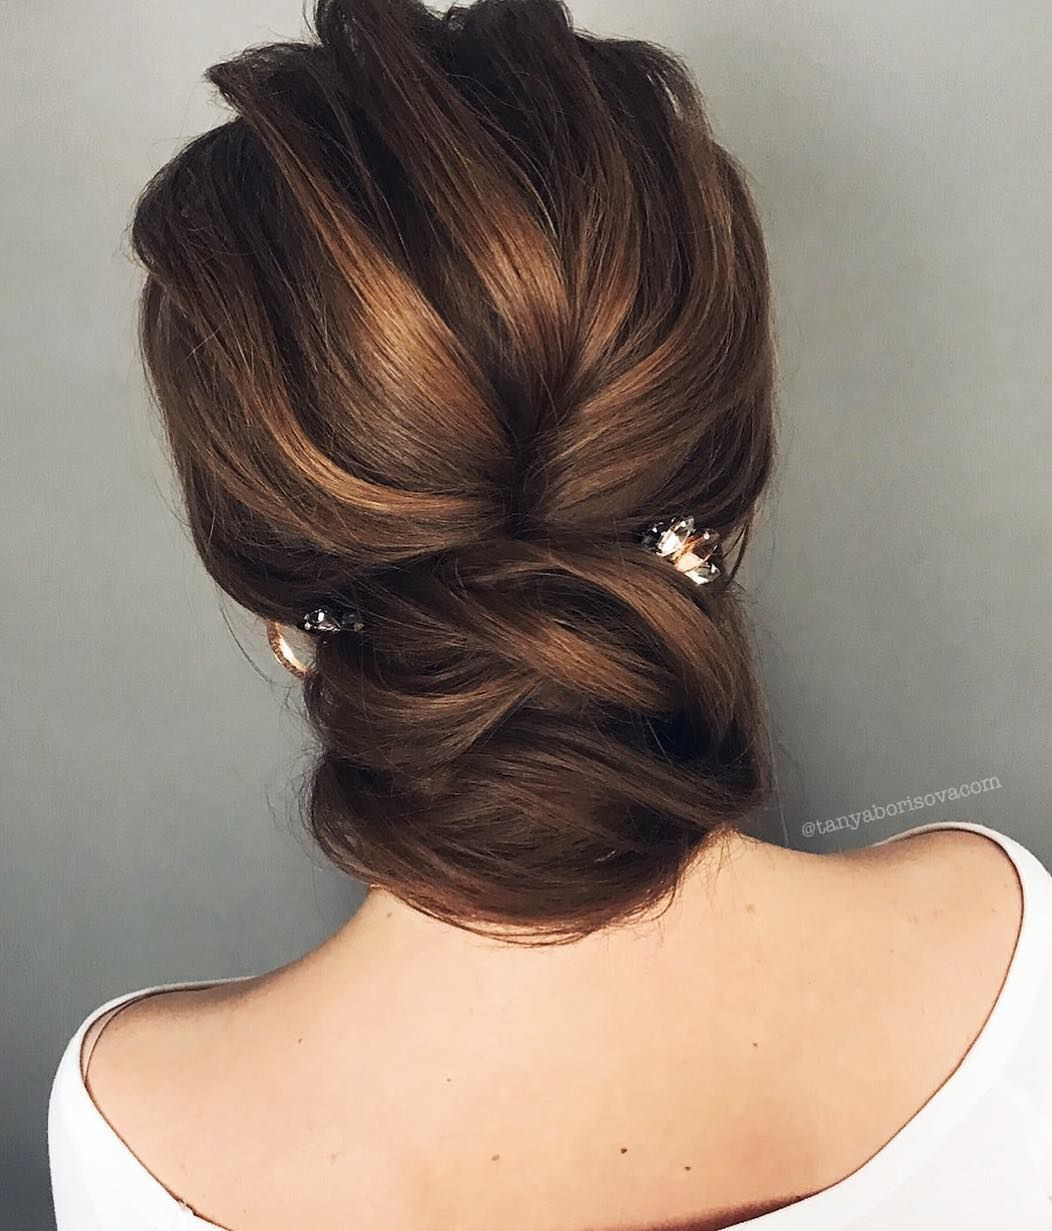 dropdead gorgeous wedding hairstyles for a romantic wedding